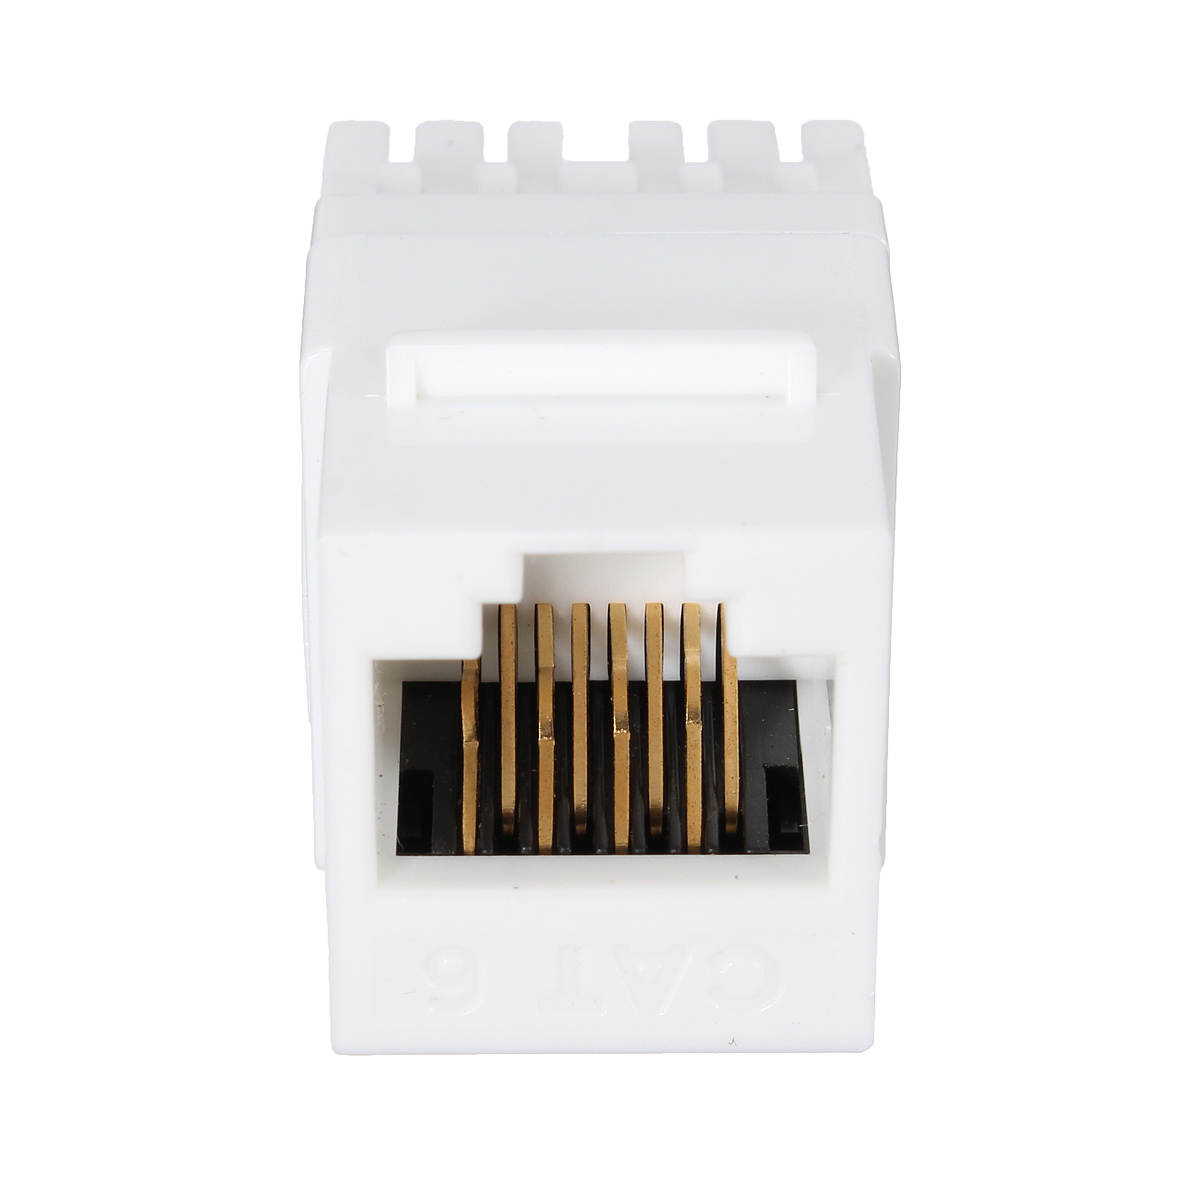 White Cat 6 RJ45 8P8C Punchdown Keystone Modular Ethernet Snap-in Jack Network product preview, discount at cheapest price